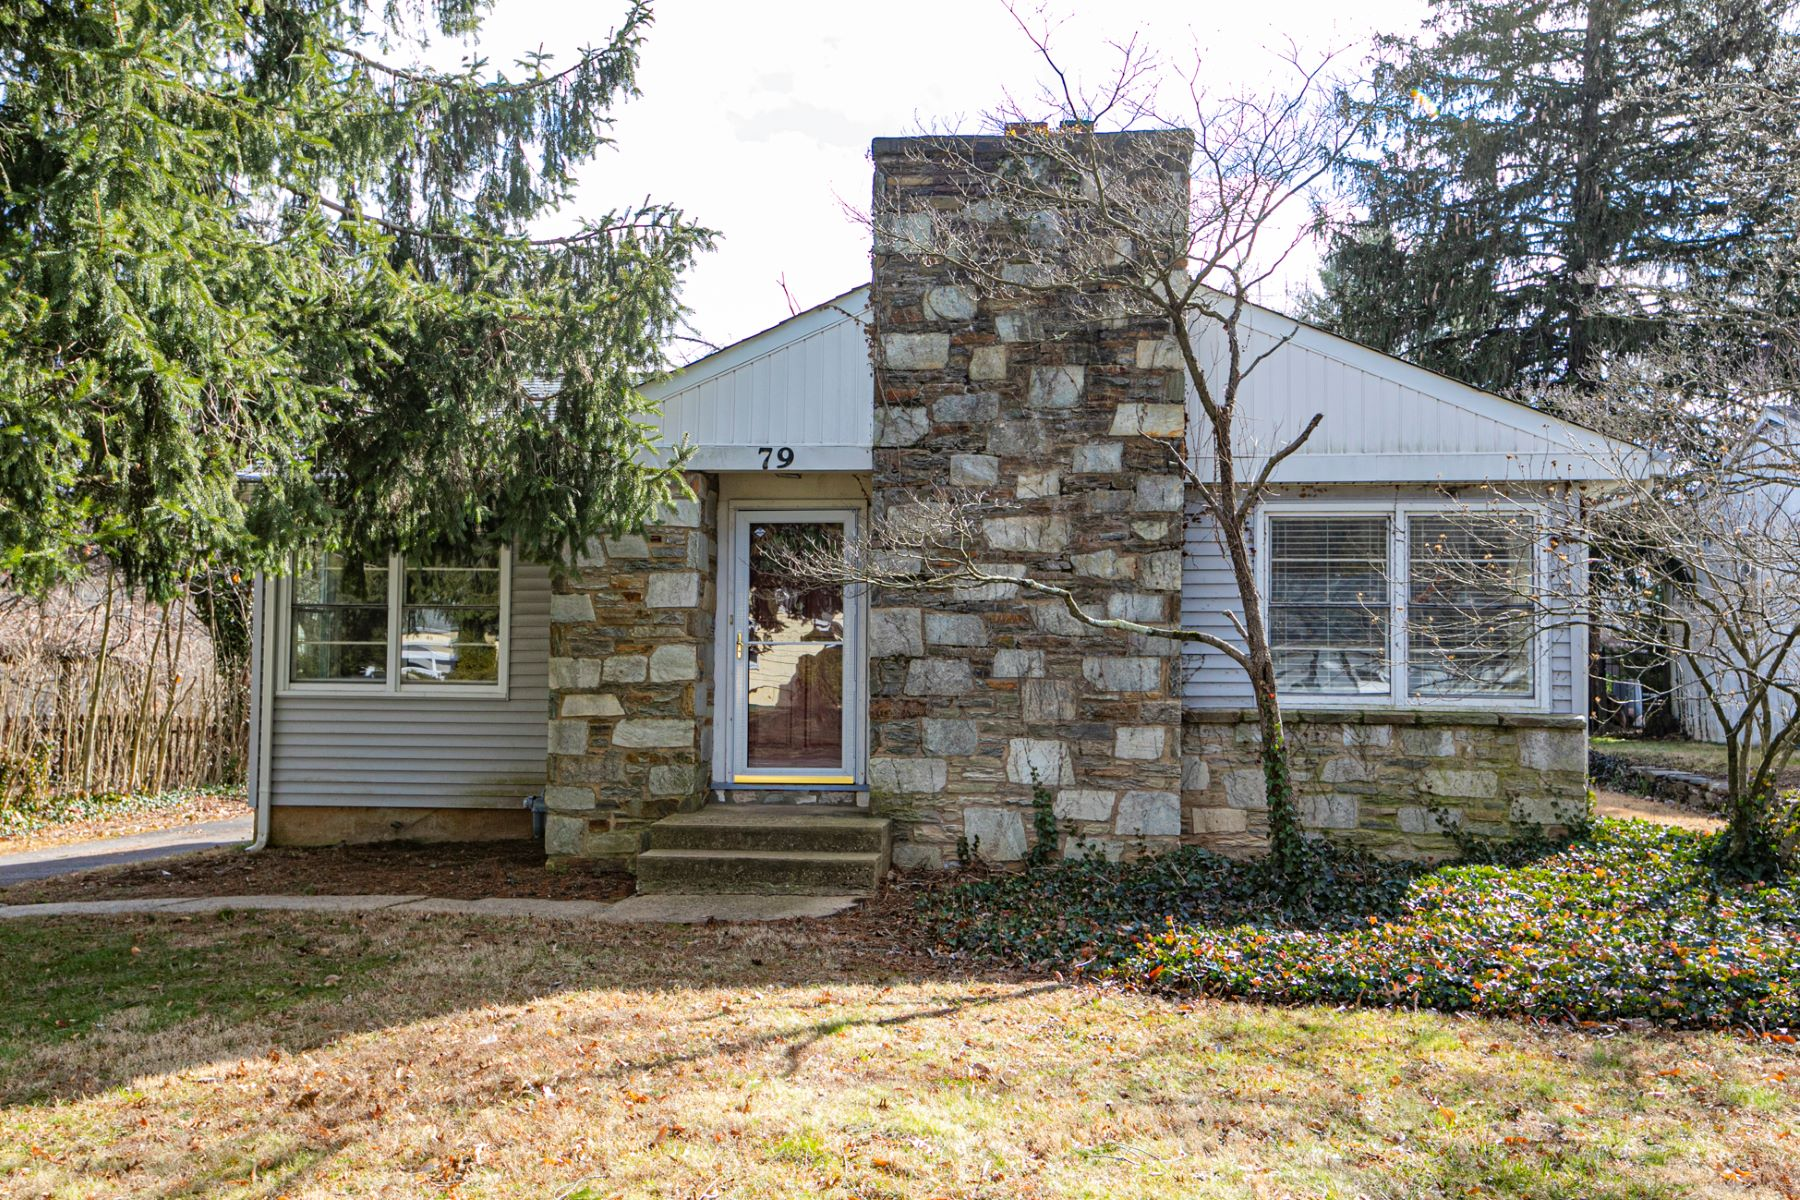 Blocks from Everything: A Great Place to Start! 79 Erdman Avenue, Princeton, New Jersey 08540 Hoa Kỳ